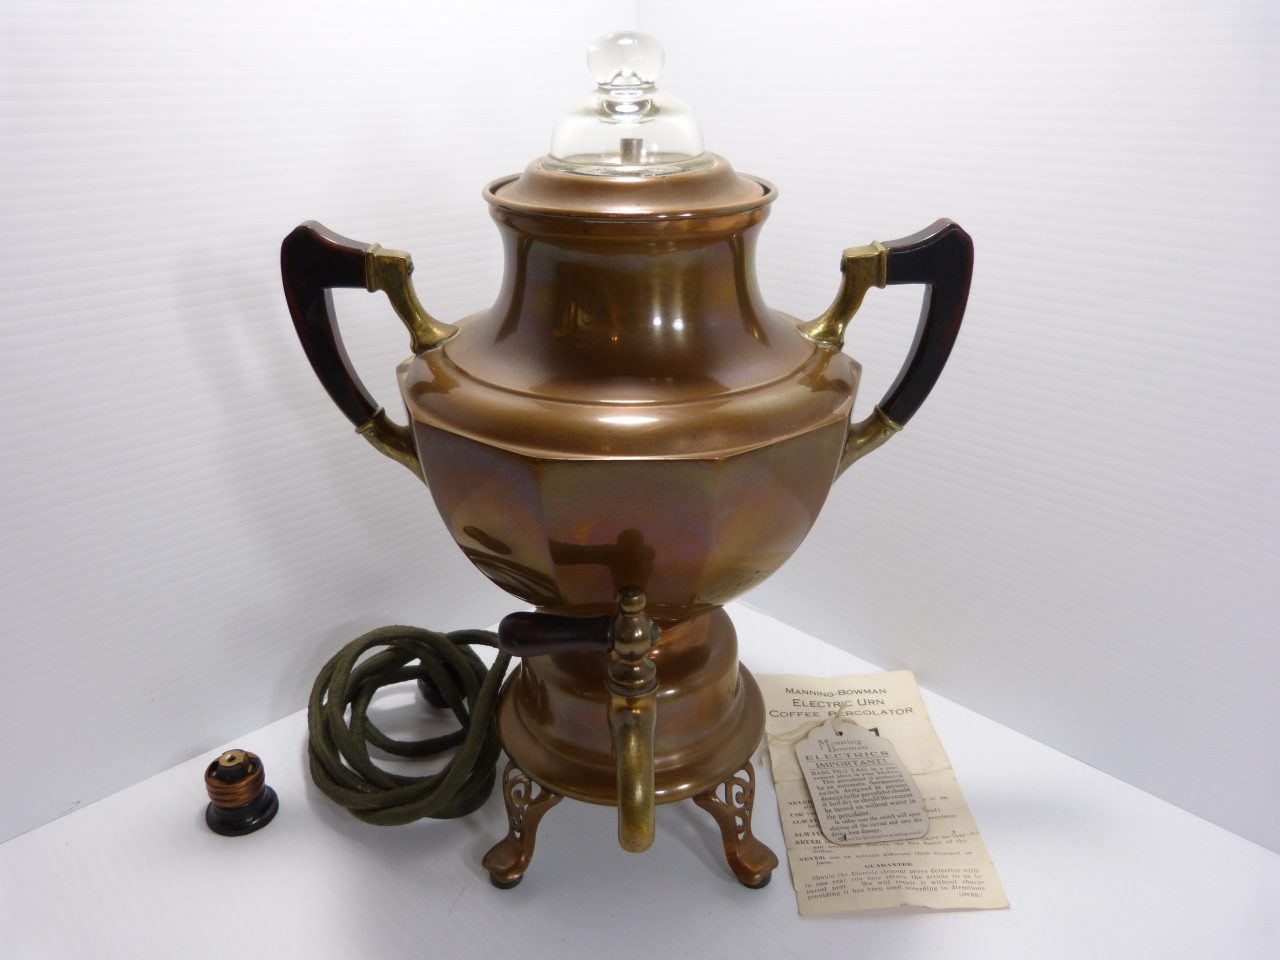 Vintage Manning-Bowman Electric Coffee Percolator